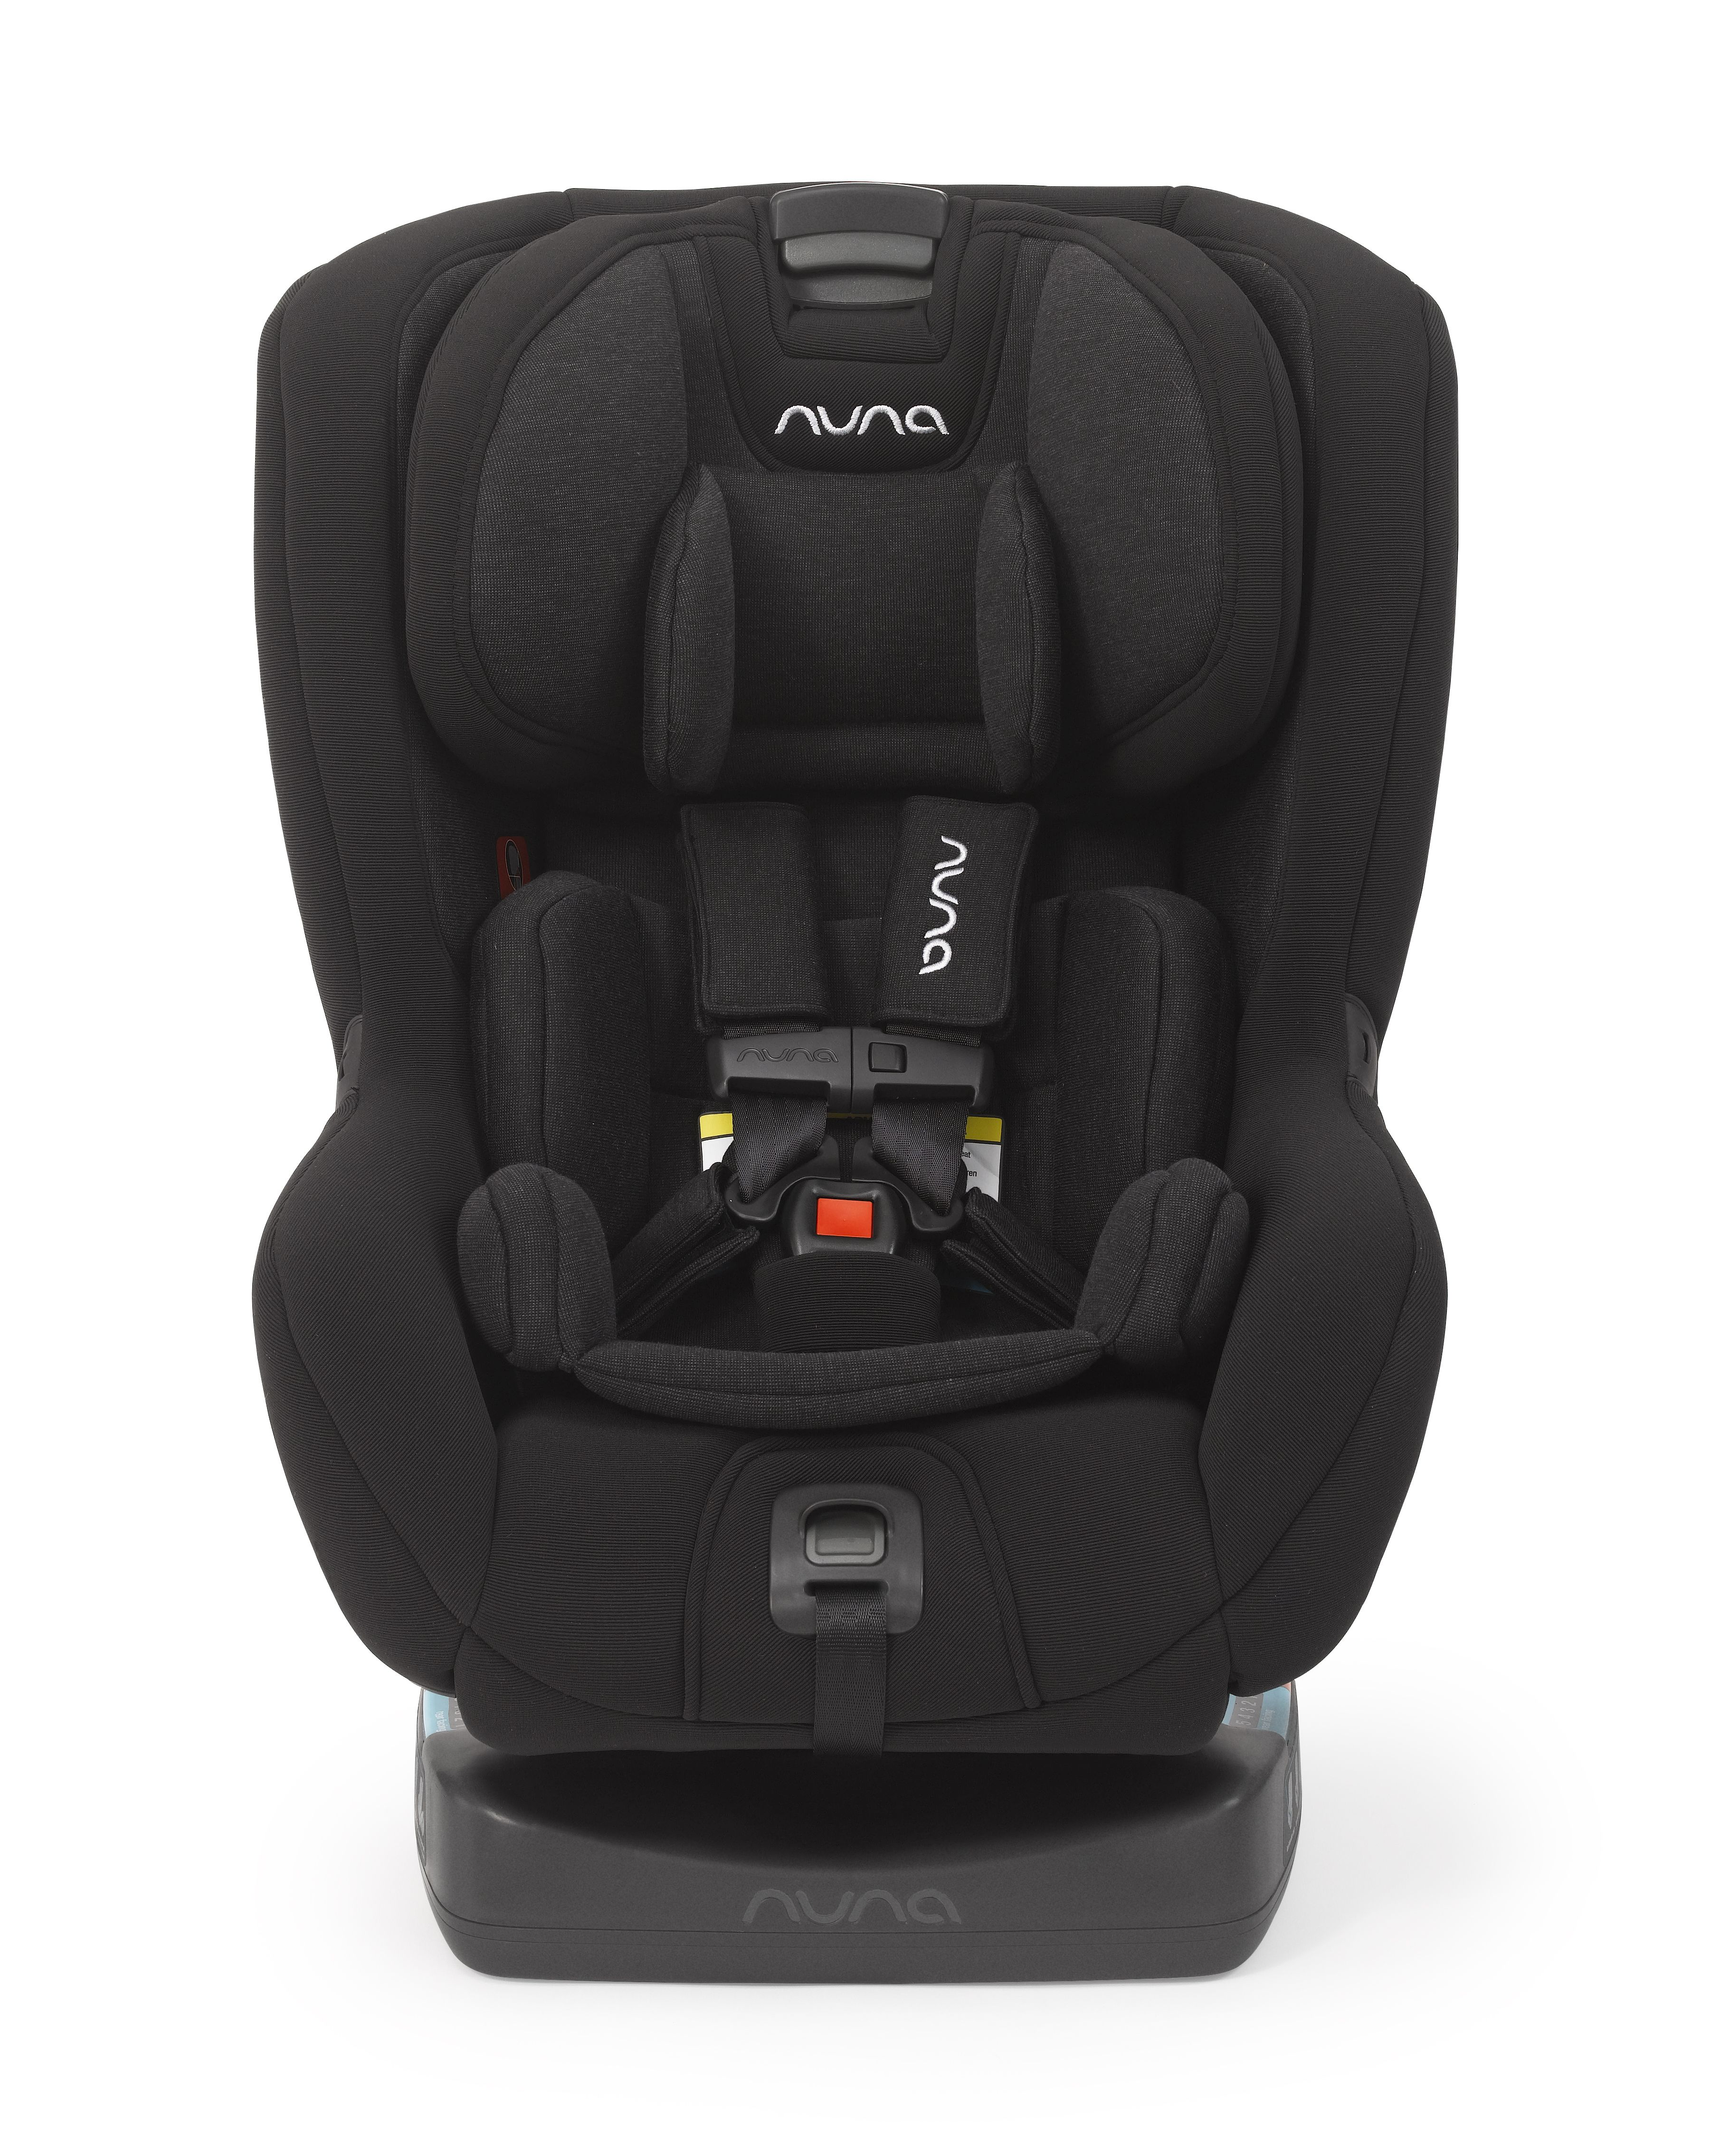 The New RAVATM Convertible Car Seat In Caviar Features A Straightforward Setup That Is Muscle Free Bubble And Hassle Purchase On 9 1 16